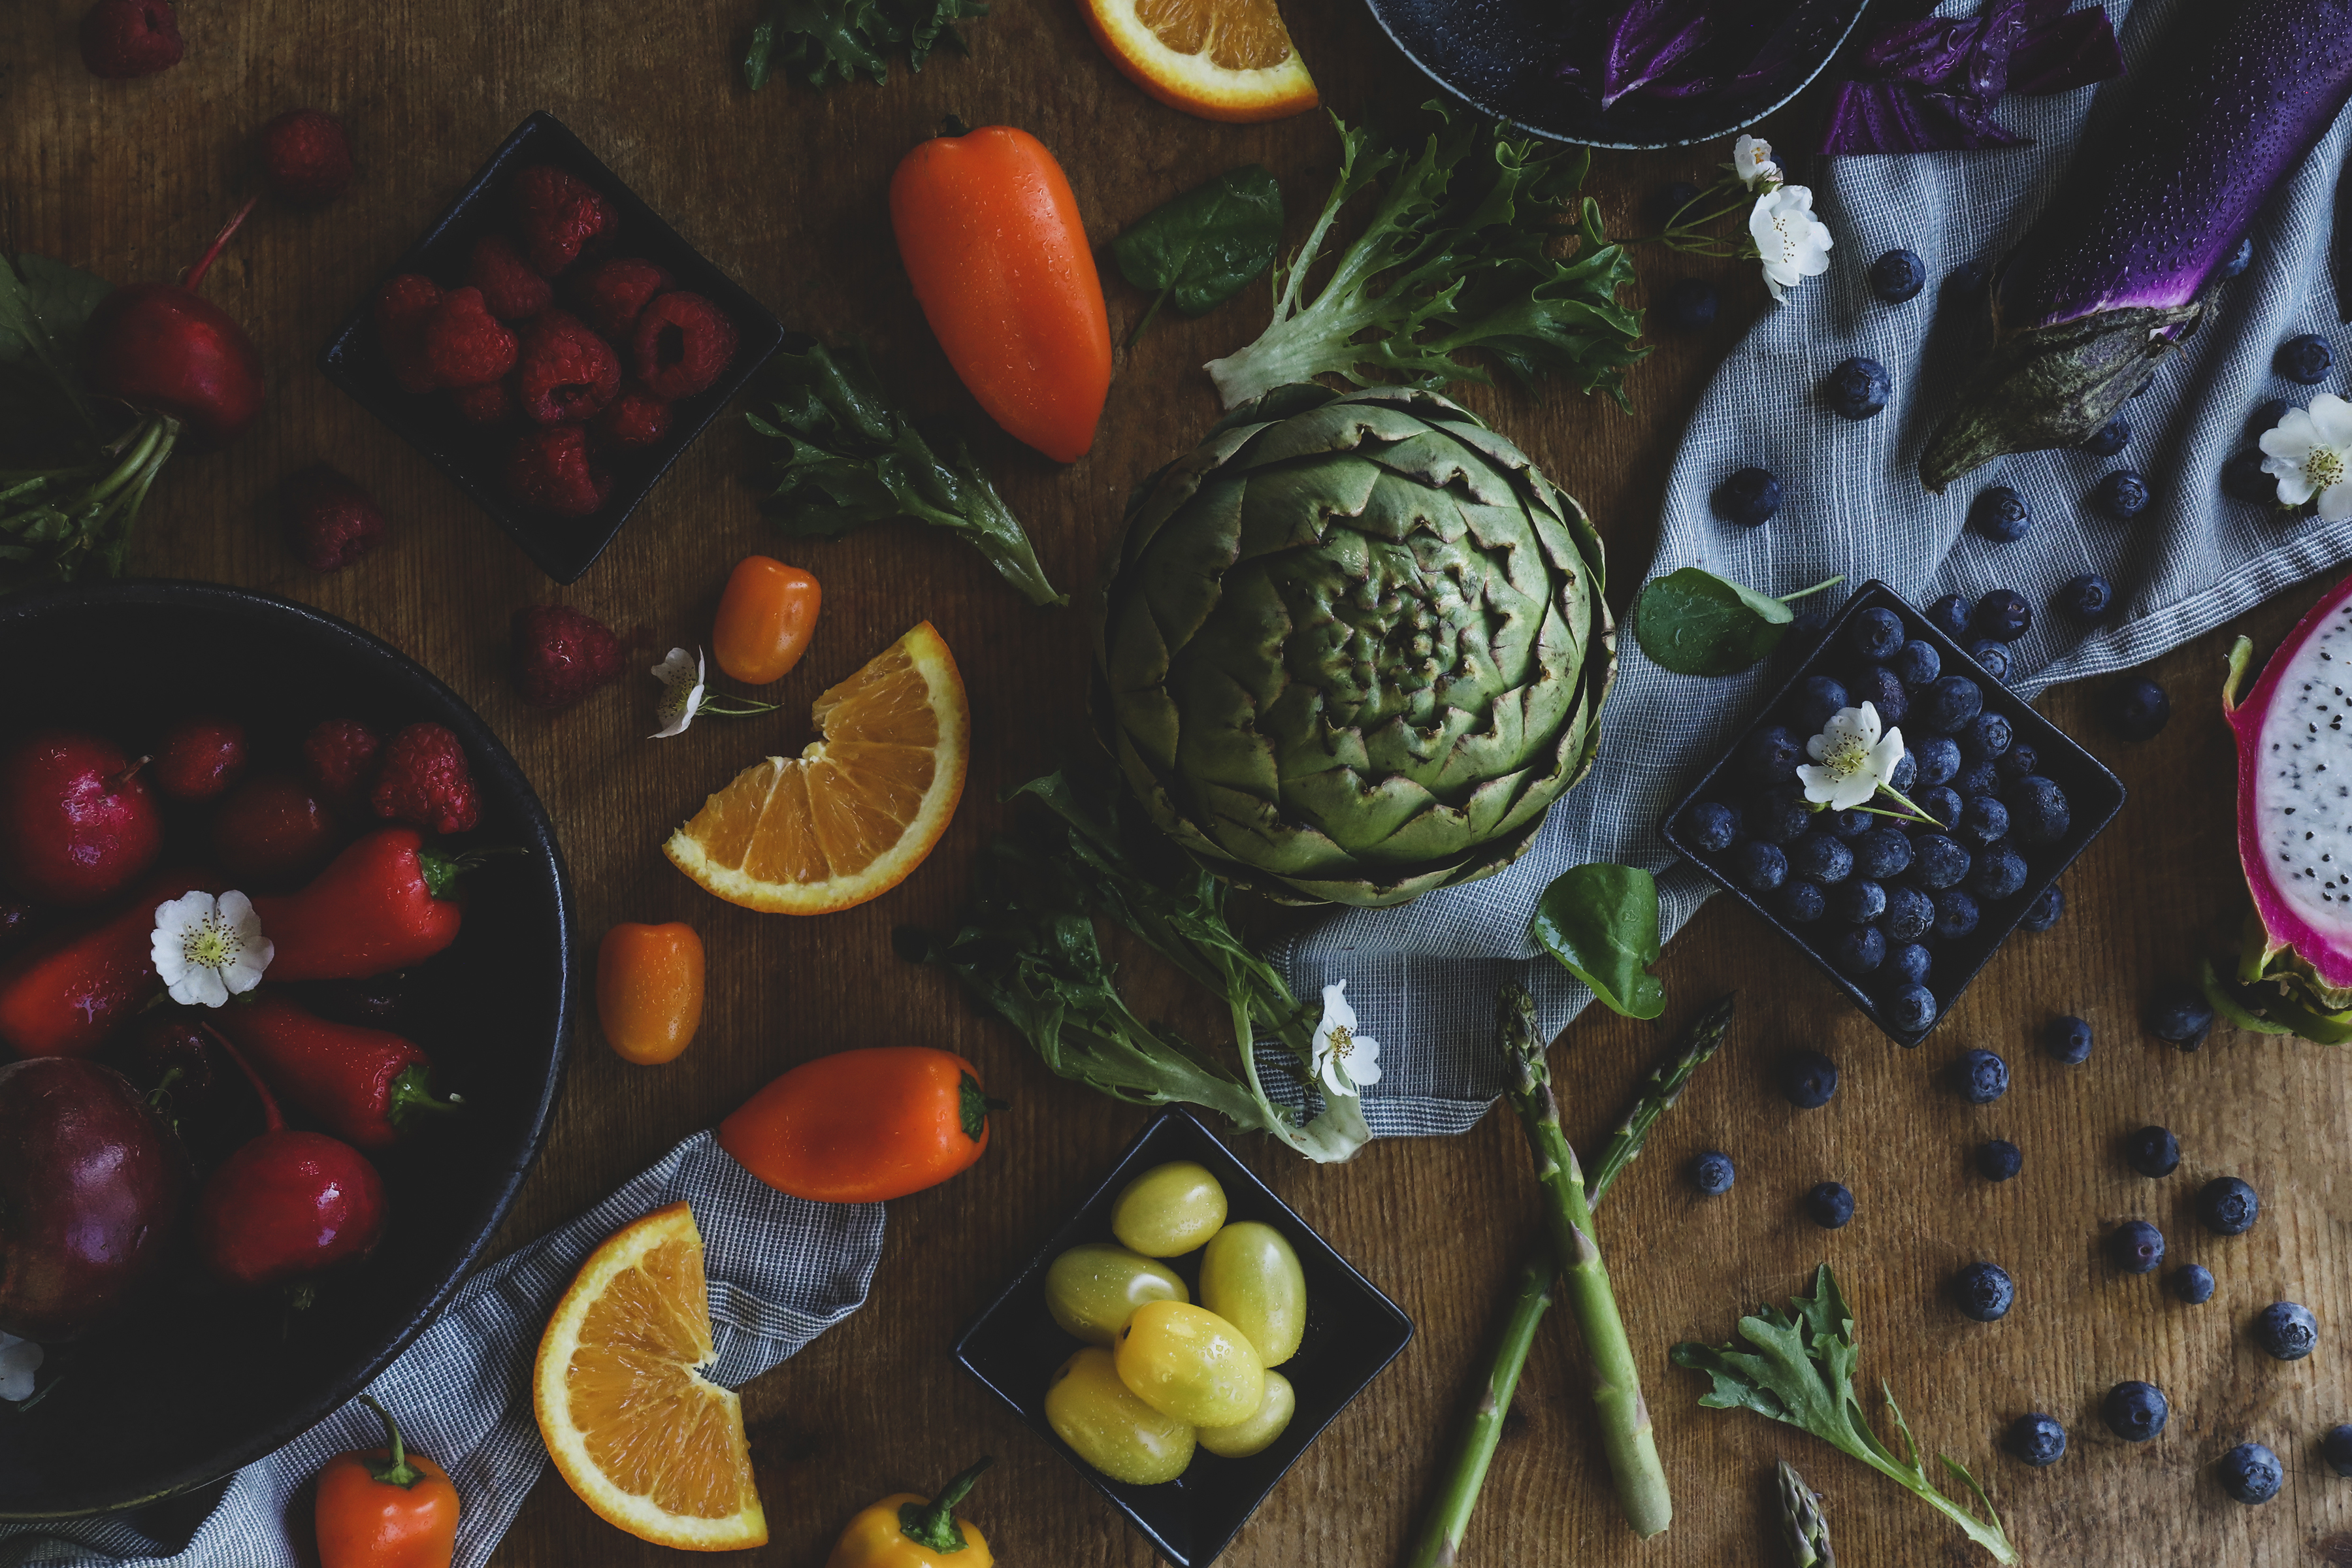 Lots of colorful fruits and veggies